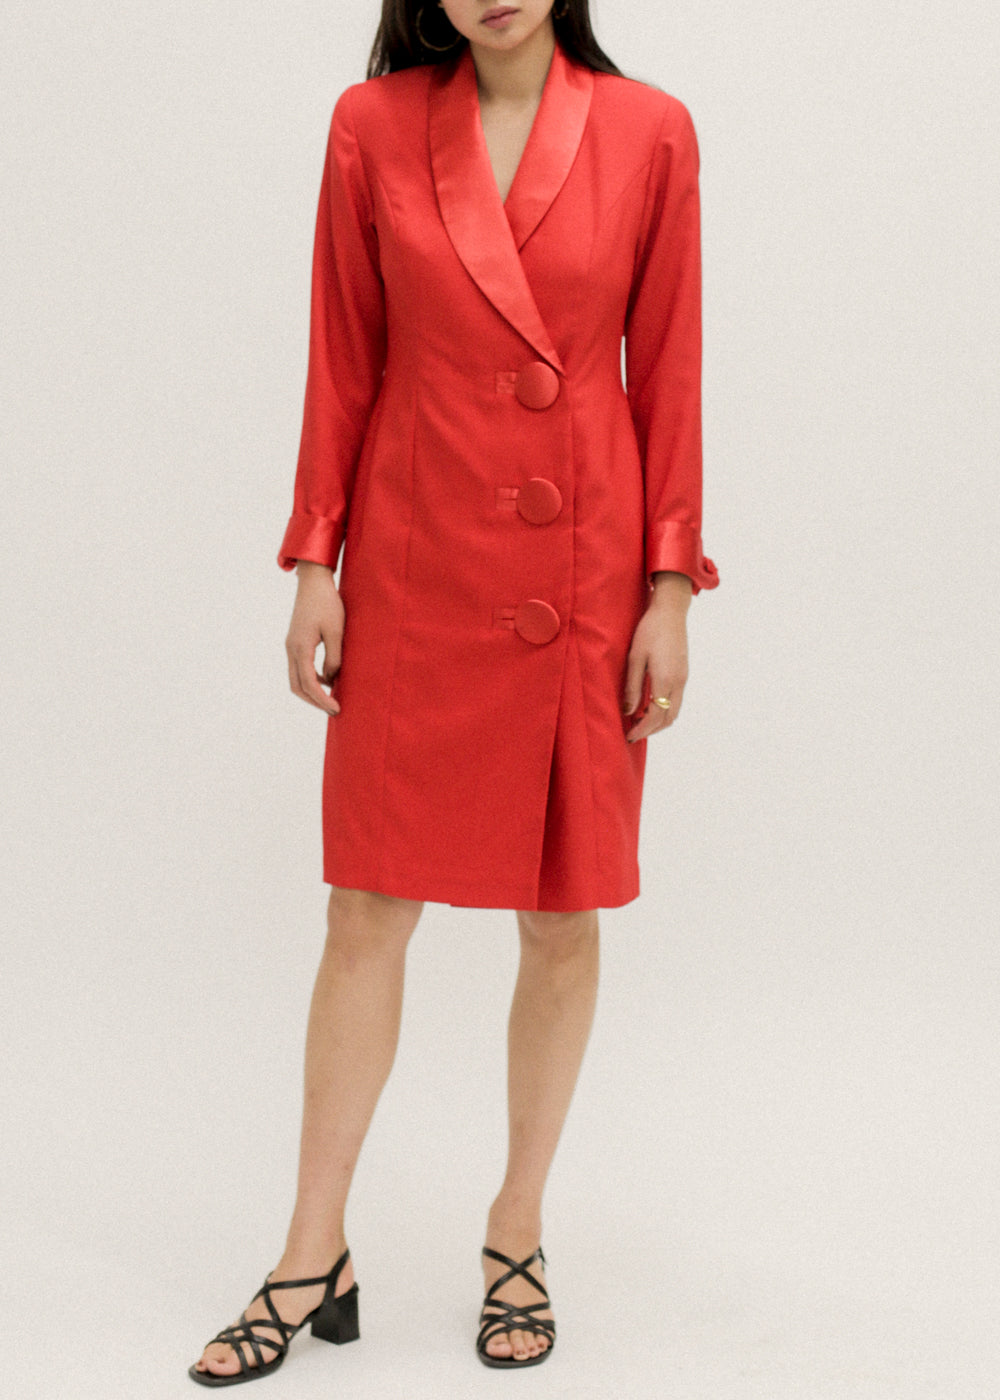 Vintage Red Blazer Dress